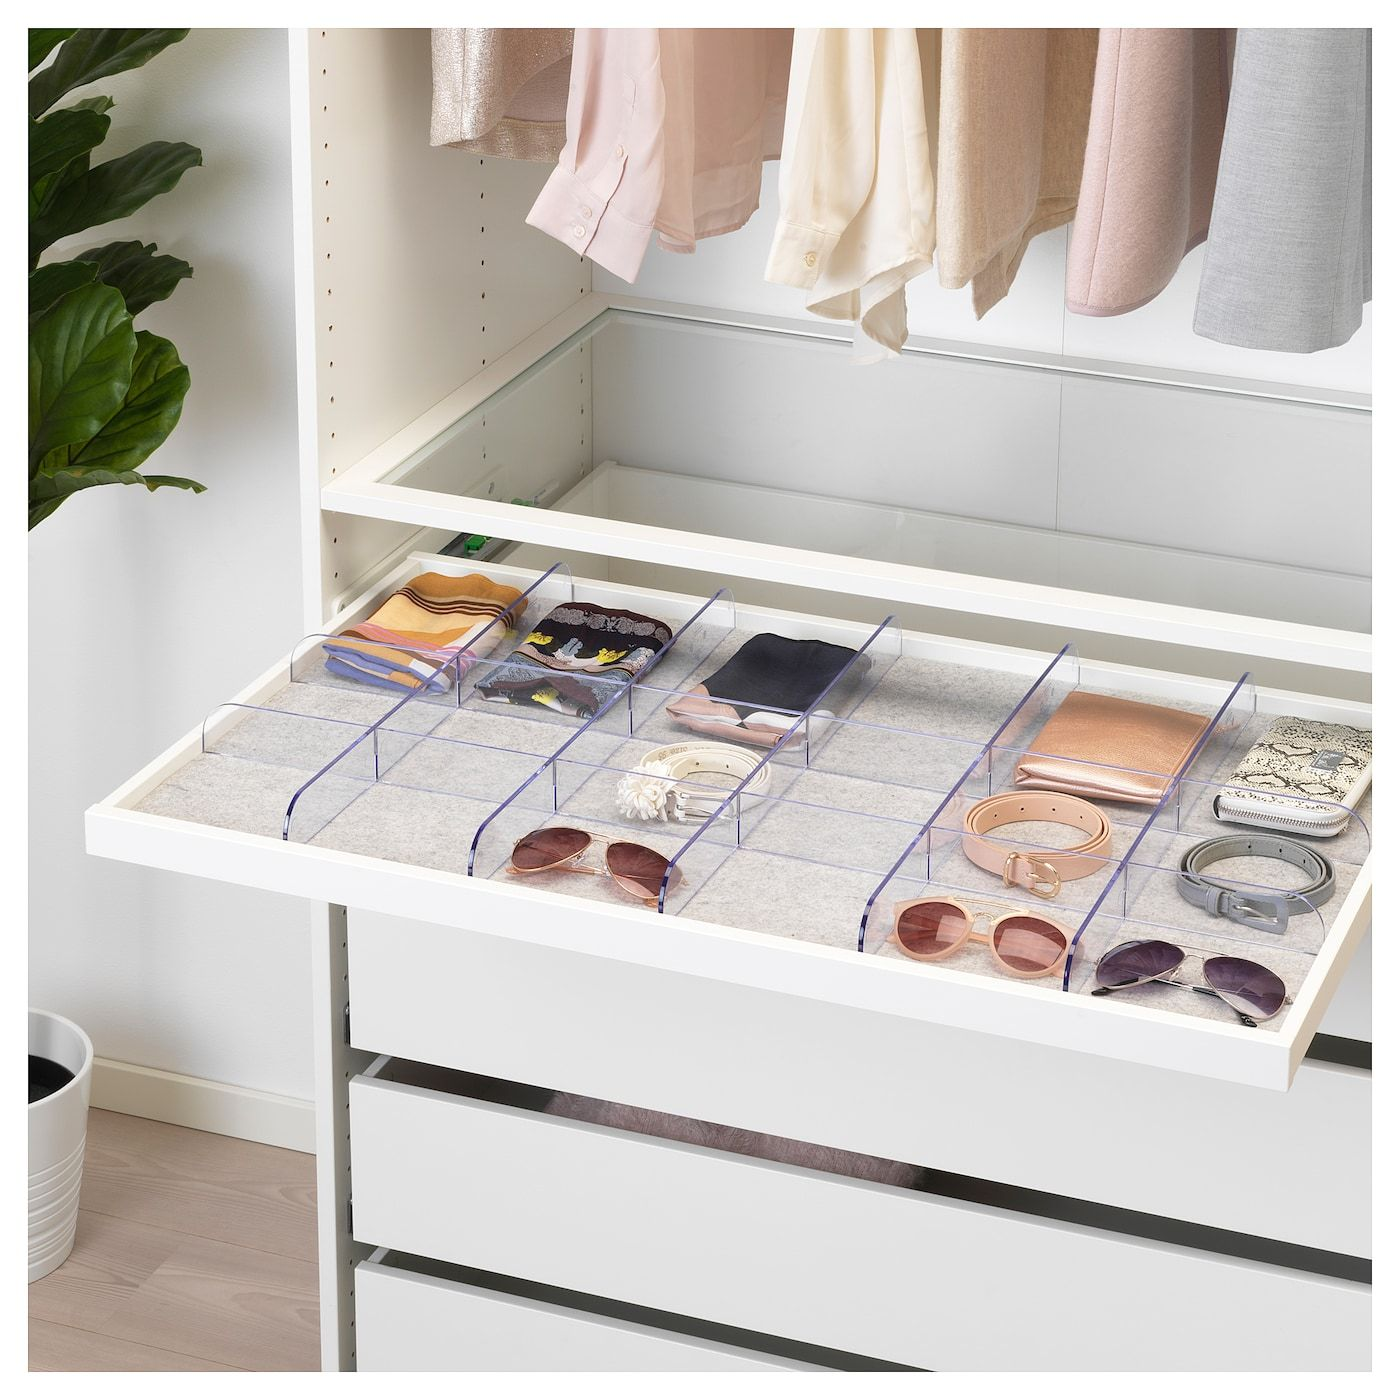 Komplement Pull Out Tray With Divider White Clear 39 3 8x22 7 8 Ikea Ikea Komplement Closet Remodel Drawer Liner